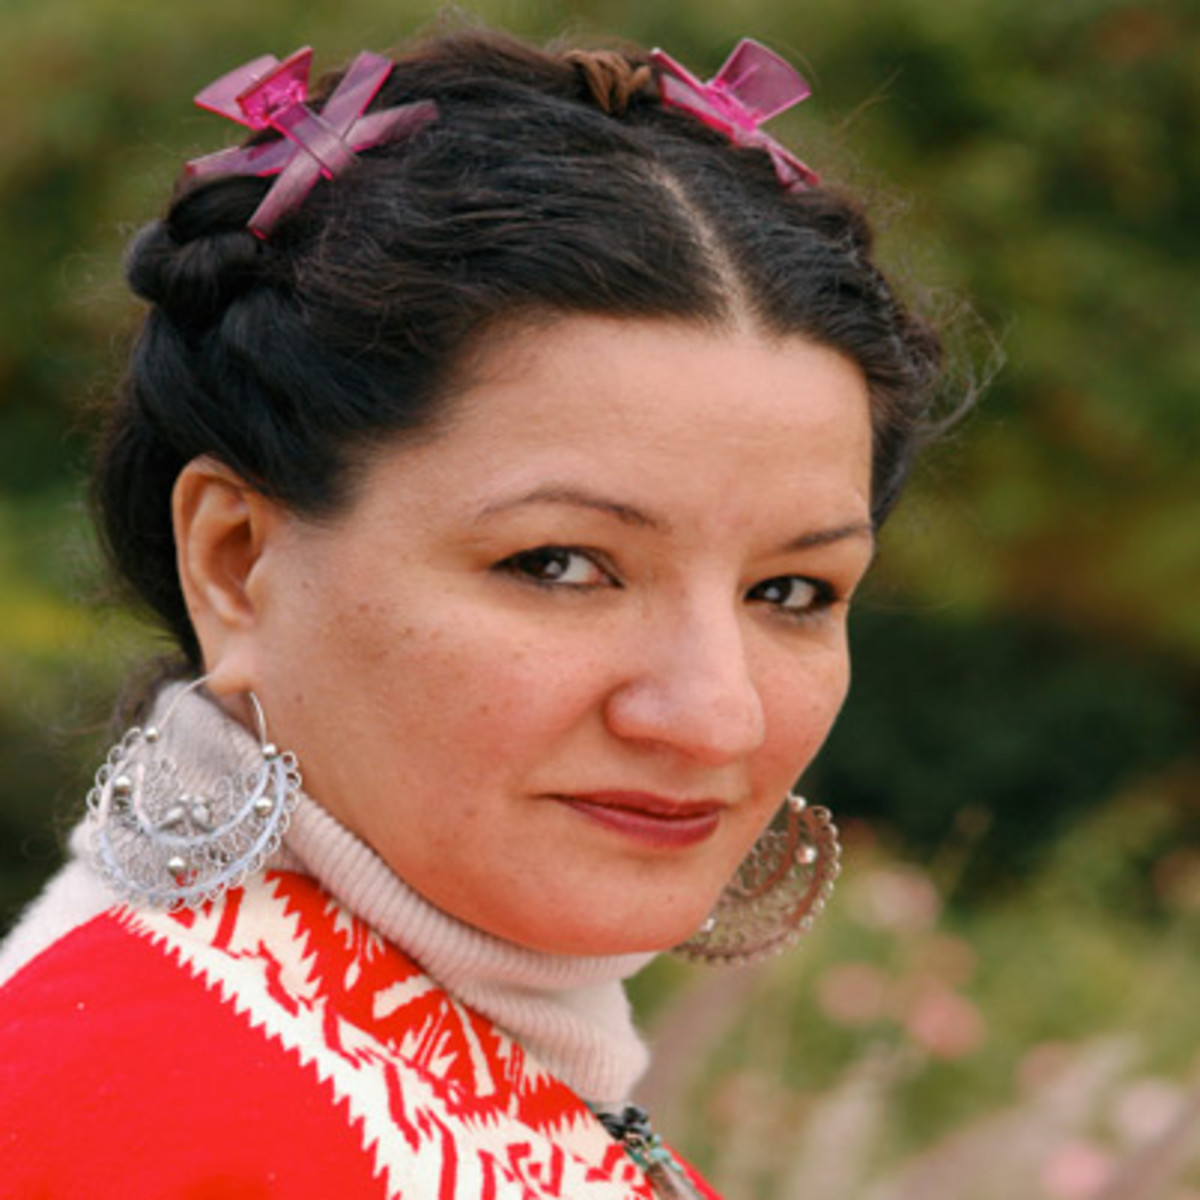 """essays by sandra cisneros Free essay: sandra cisneros's """"never marry a mexican"""" introduces readers to clemencia cisneros eludes clemencia as a woman who appears proud of her mexican."""